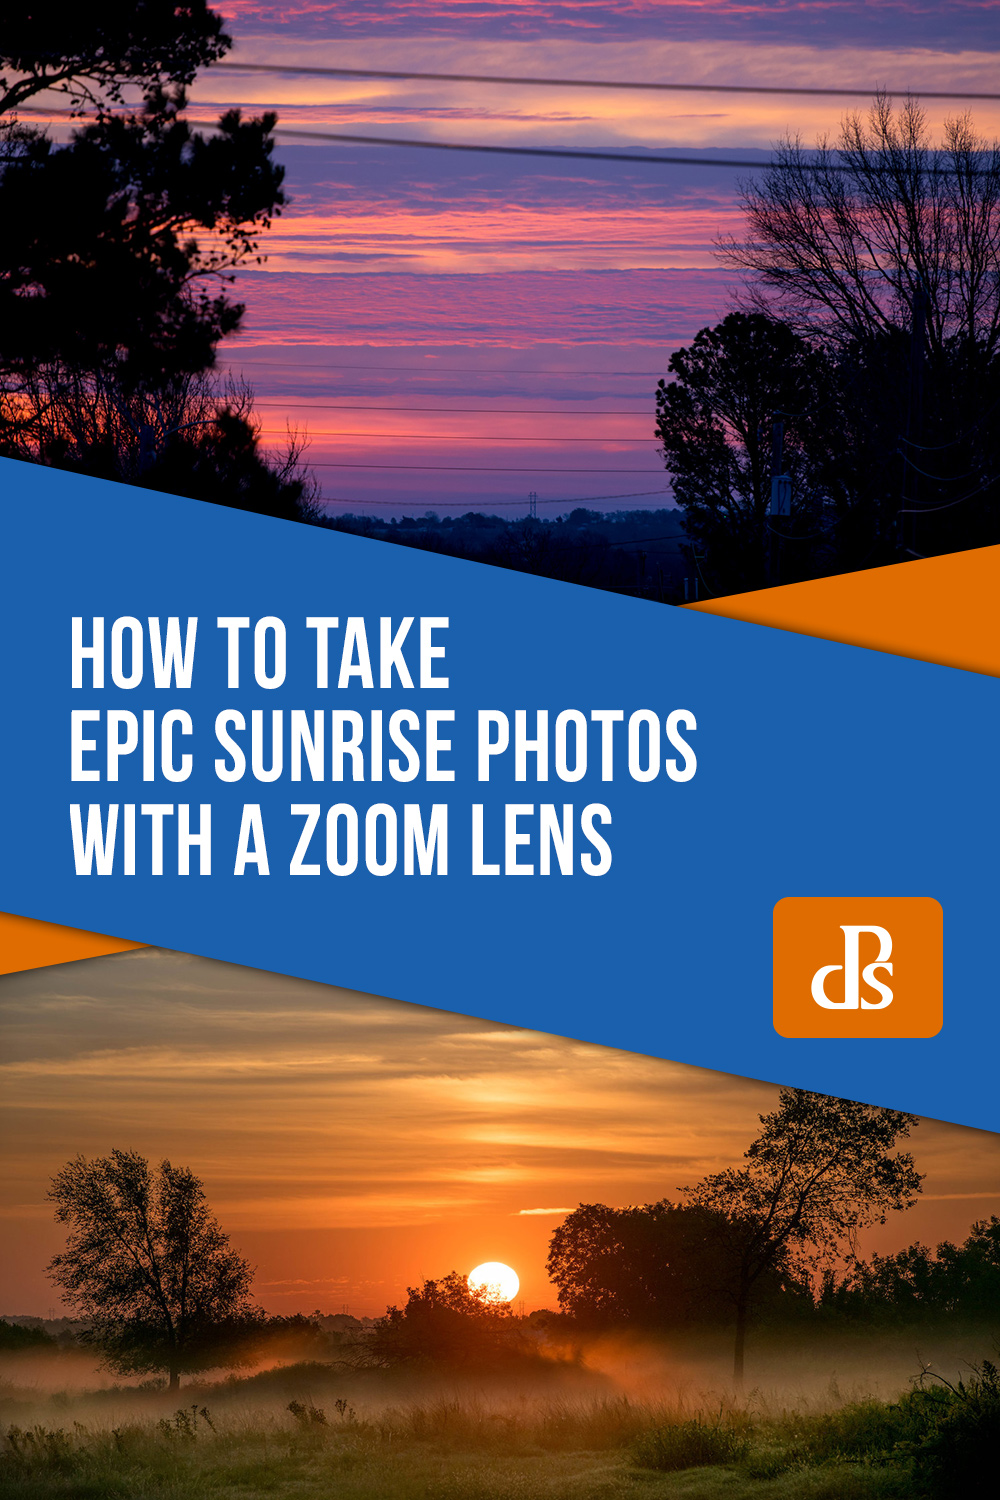 epic-sunrise-photos-with-a-zoom-lens